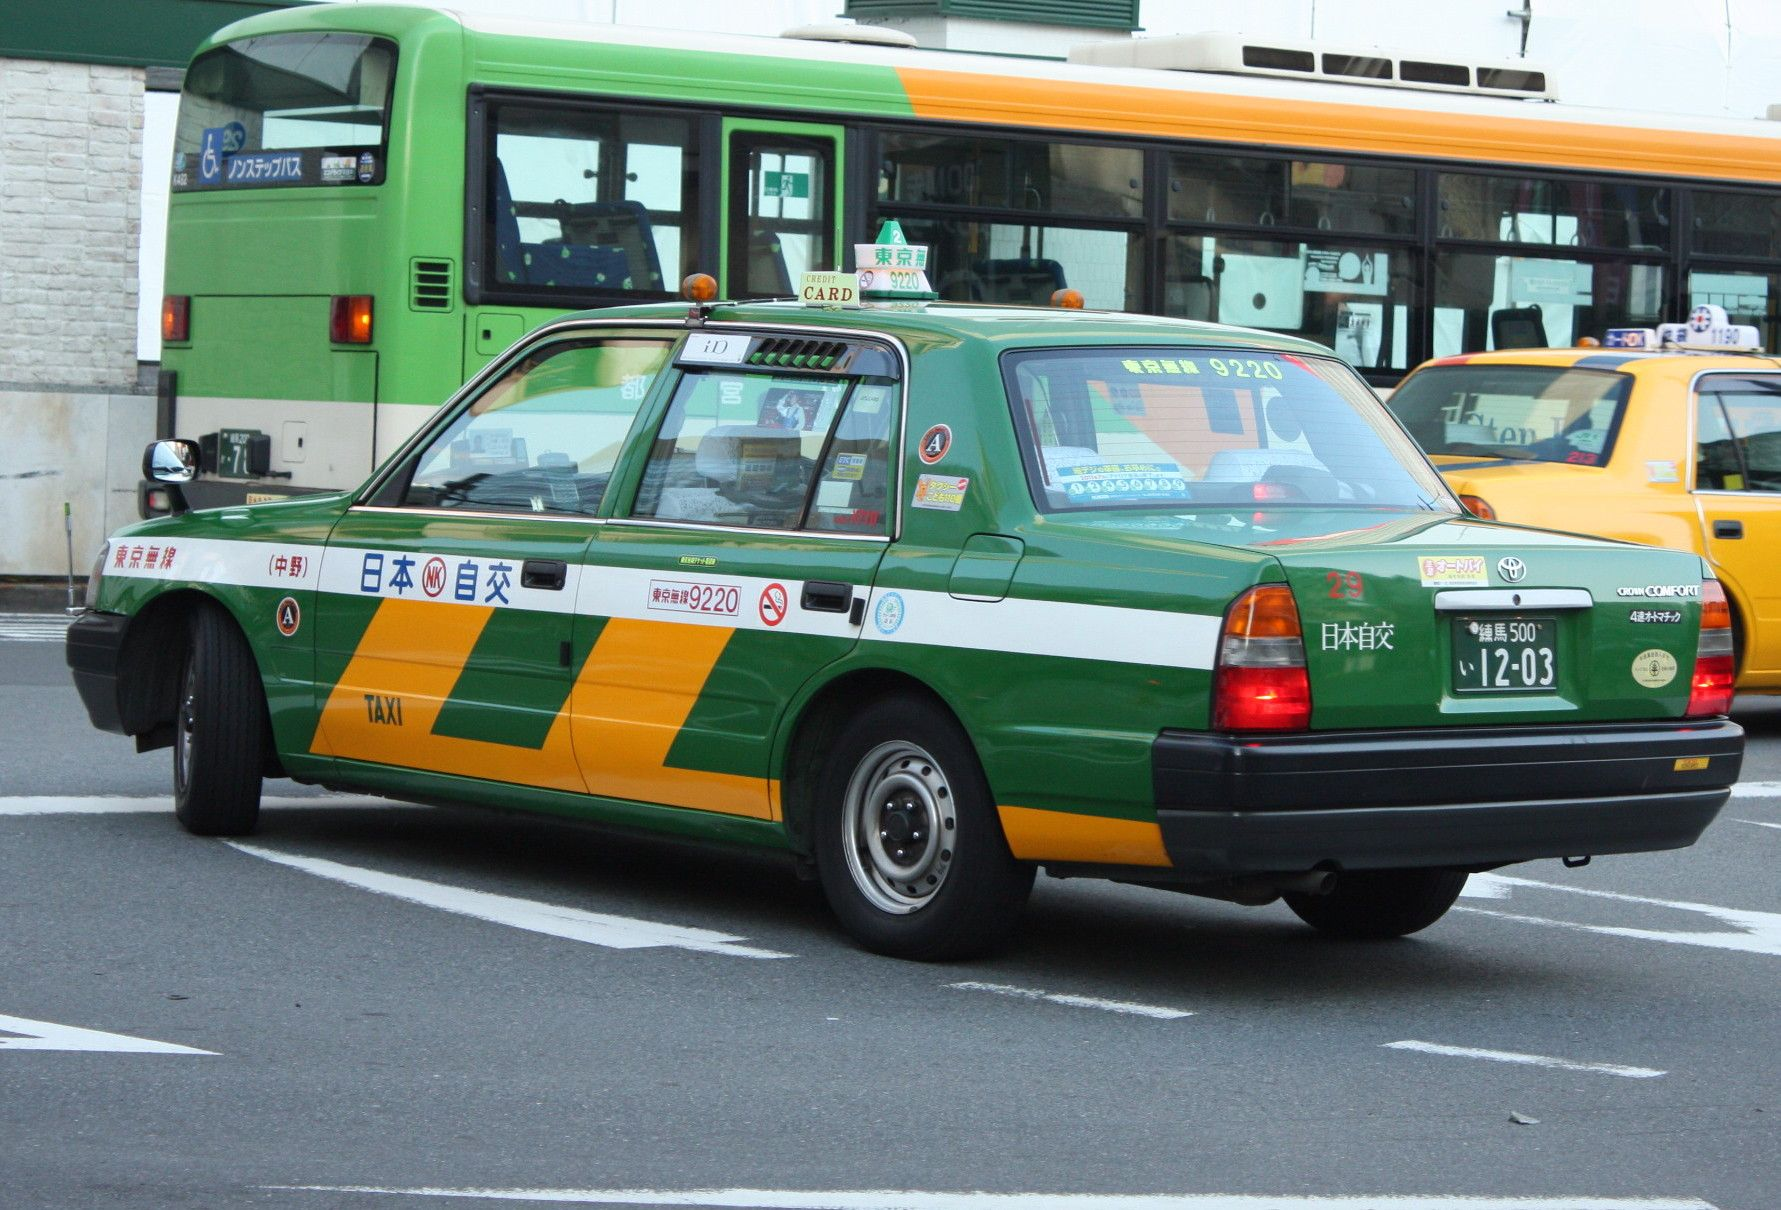 Taxi fares in Tokyo to start at Y430 from Jan 30 - Japan Today